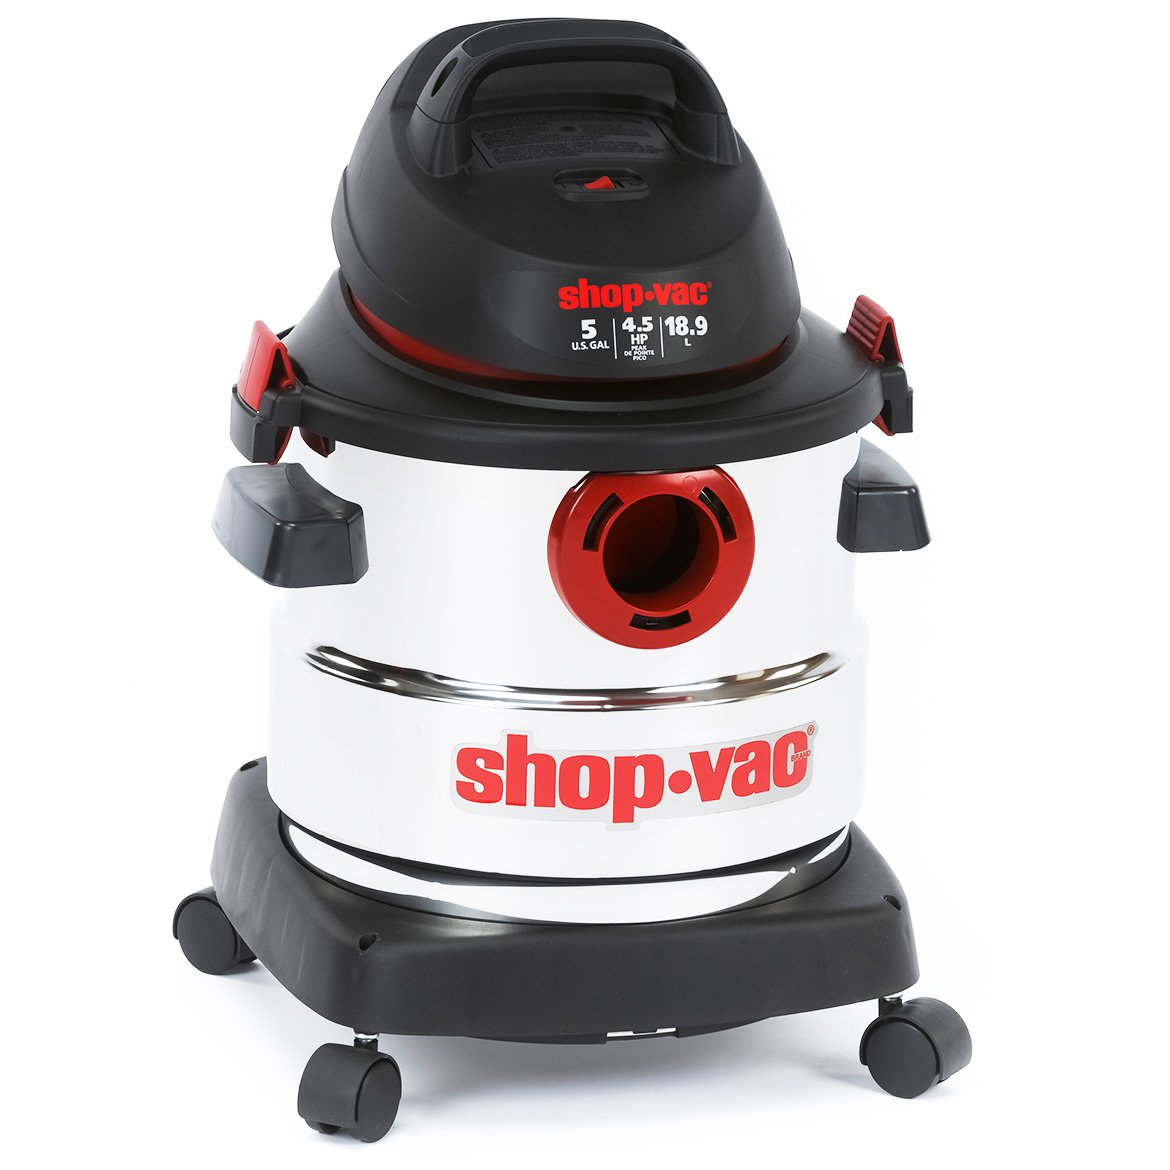 61W5rY1Bx9L._SL1170_ shop vac 5989300 5 gallon 4 5 peak hp stainless wet dry vacuum Shop-Vac Brand Replacement Parts at highcare.asia